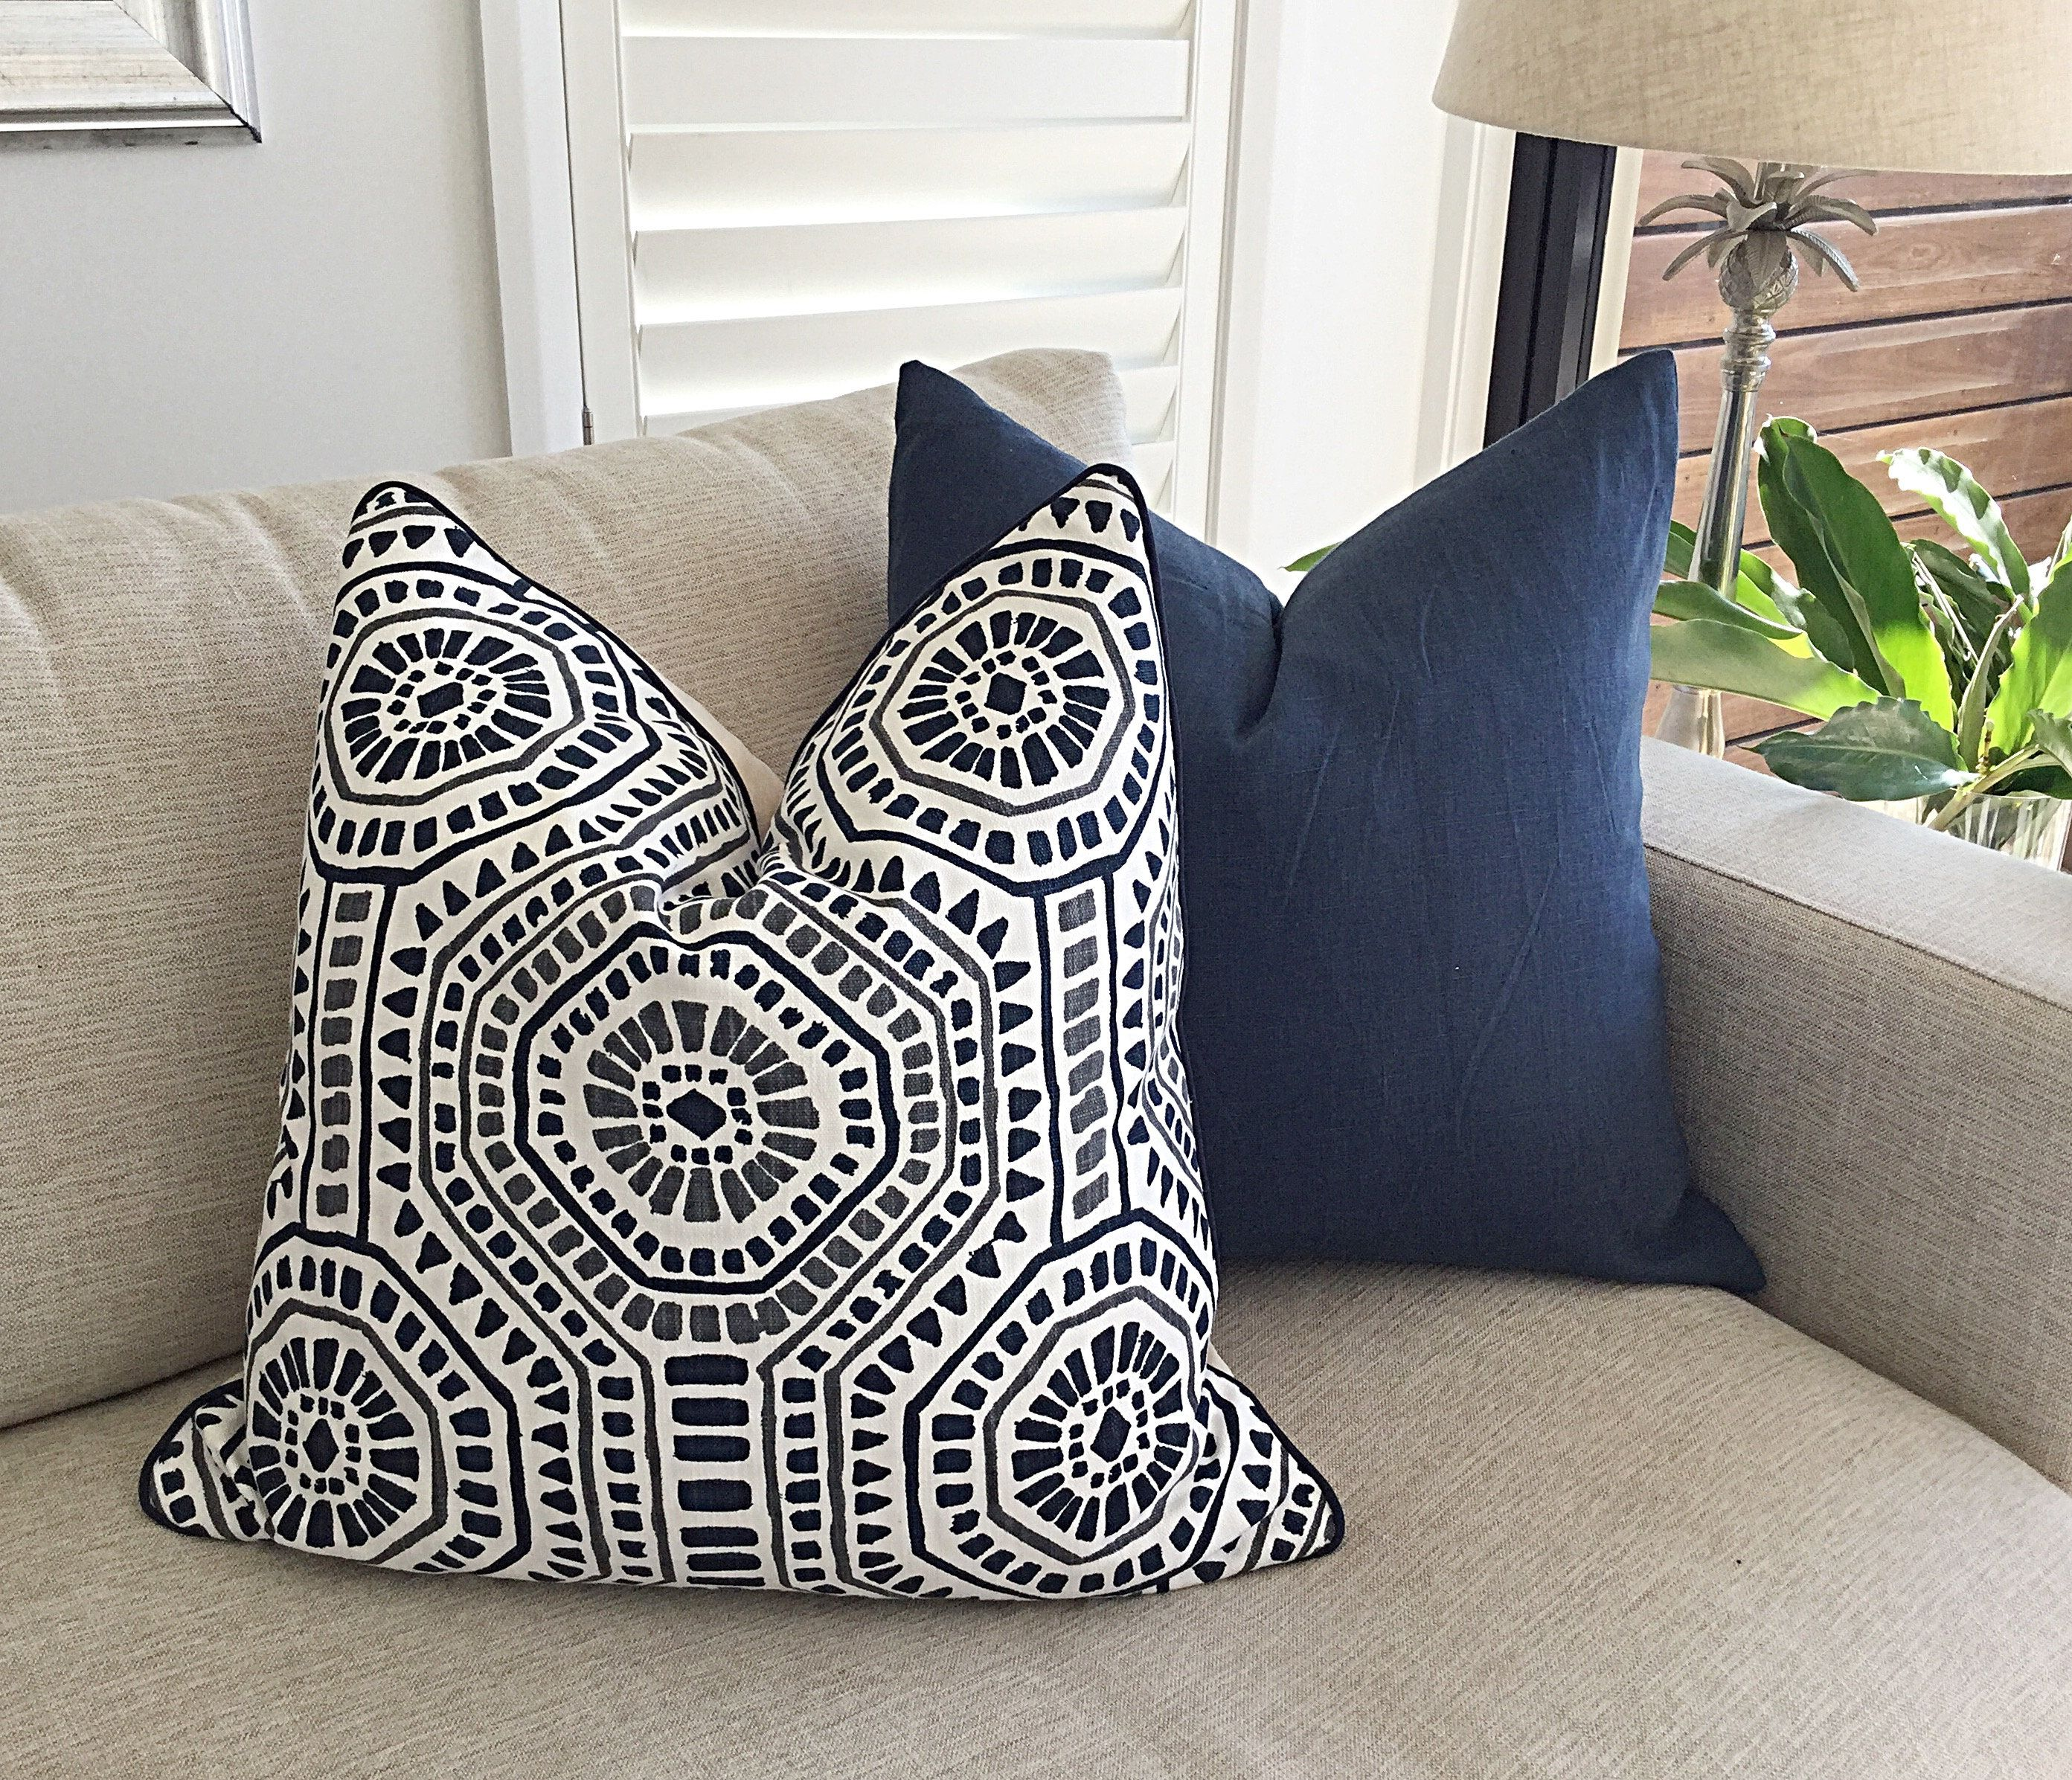 Navy Cushions Boho Style Cushion Cover Moroccan Tile Blue Scatter Cushions Linen Navy Blue Toss Pillow Covers Navy Blue Pillows Blue Toss Pillows Blue Couch Pillows